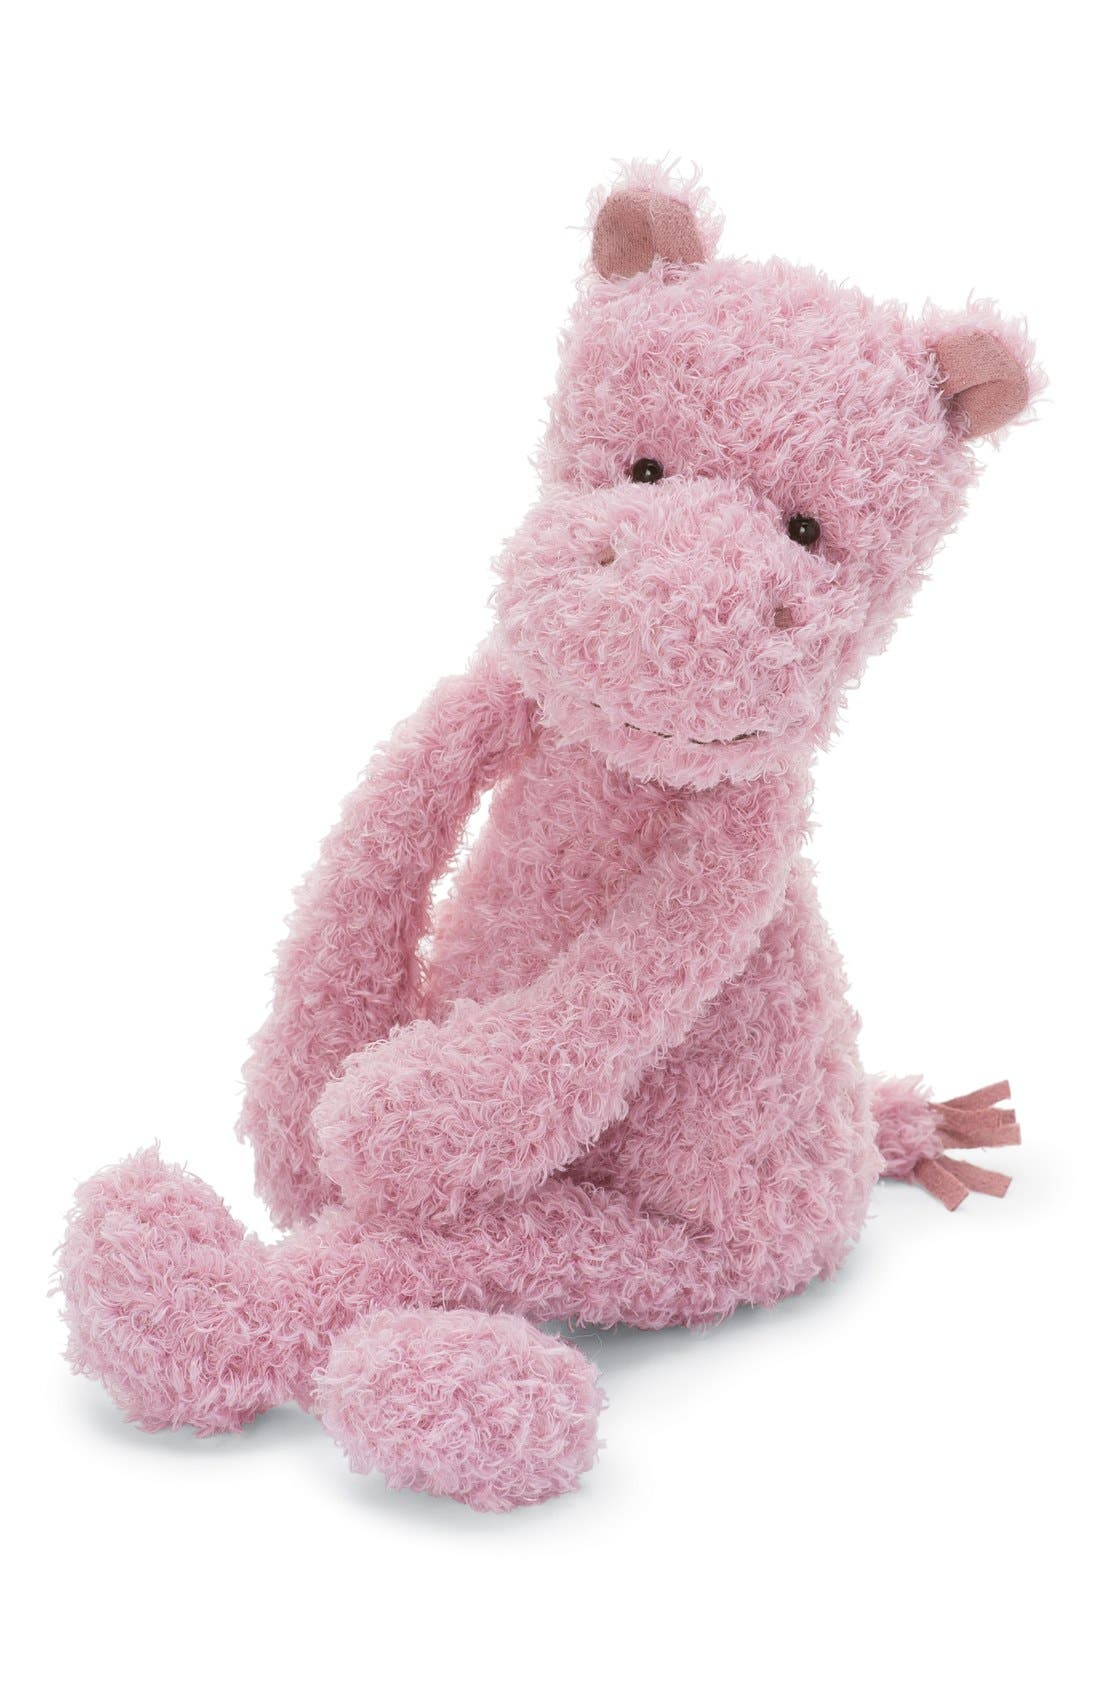 'Wild Thing Hippo' Stuffed Animal,                             Main thumbnail 1, color,                             Pink